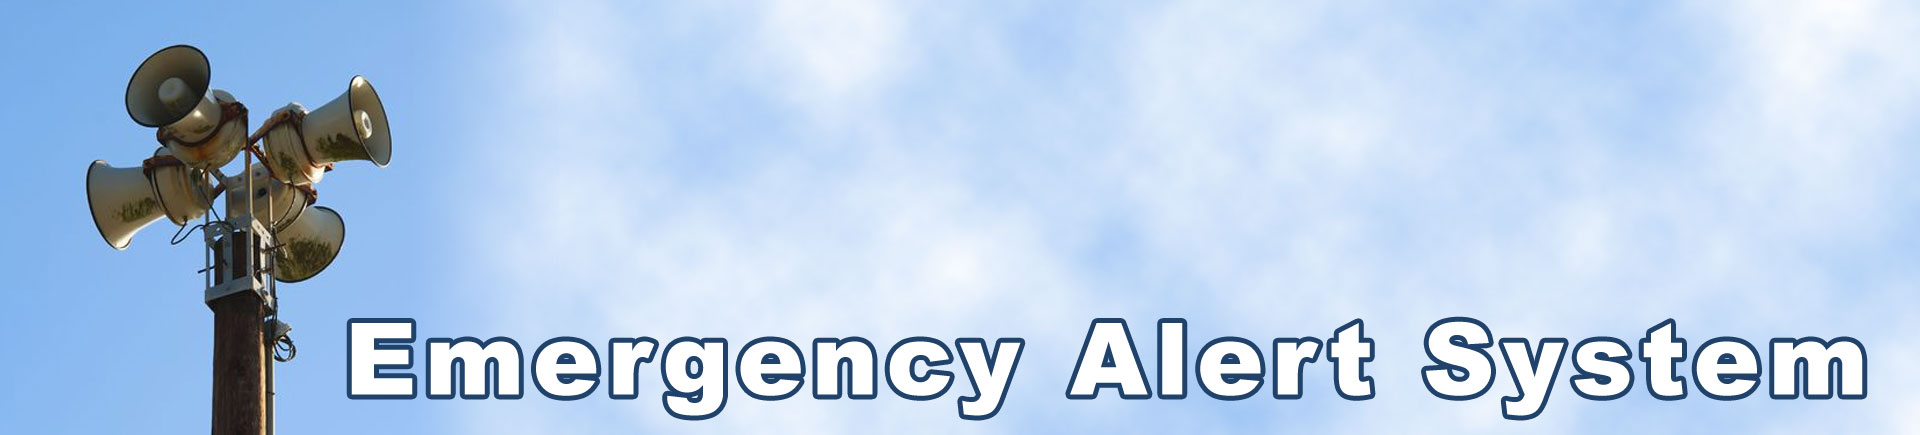 Linlcoln County Emergency Alert System